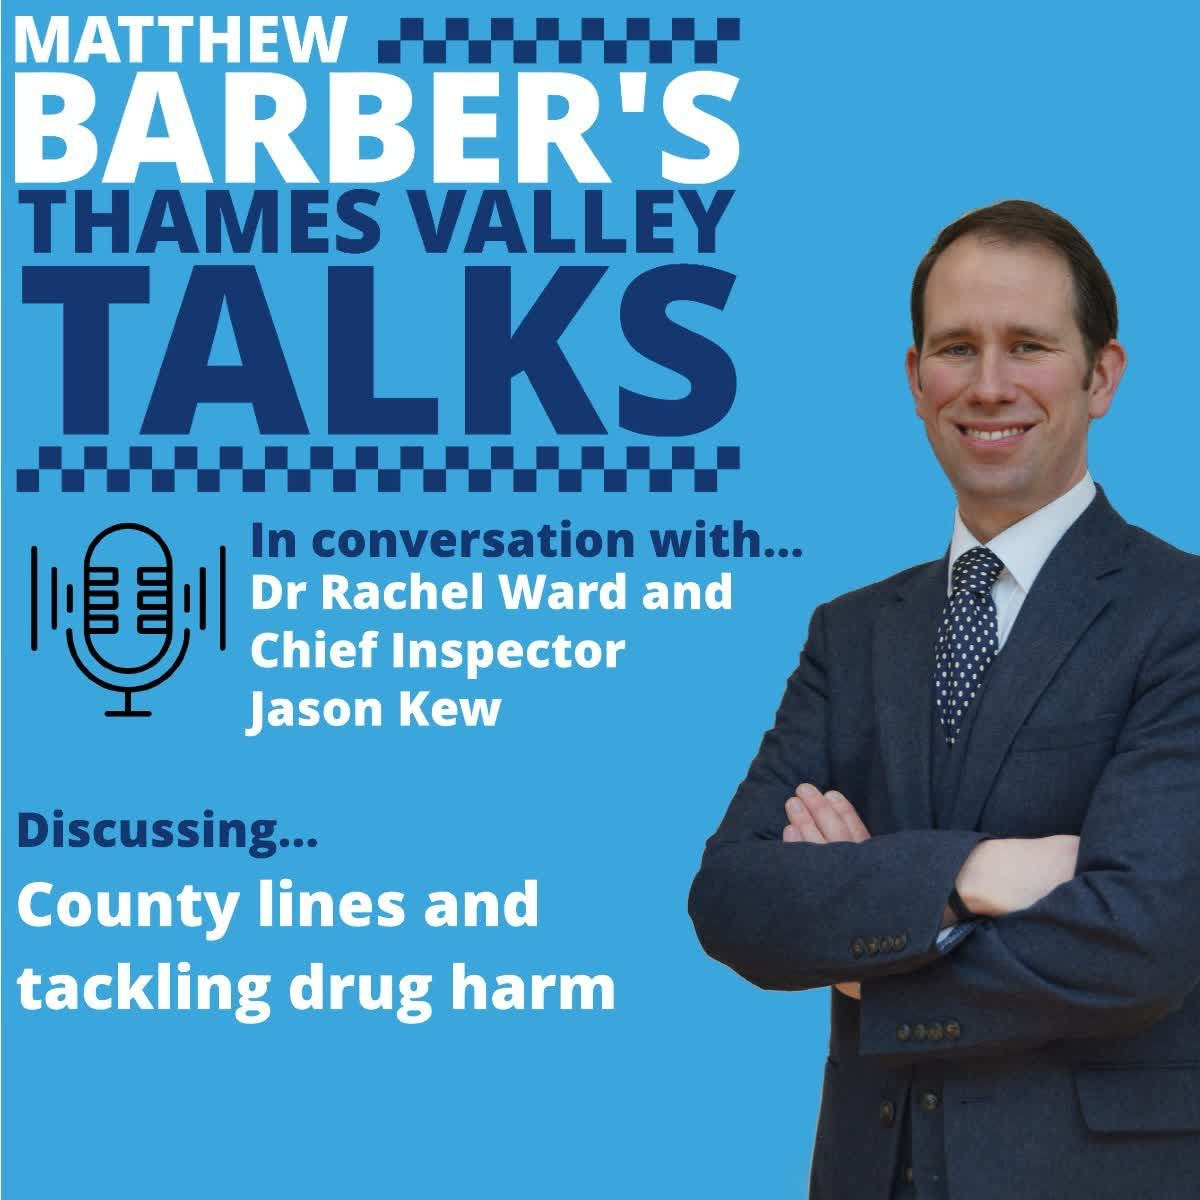 County lines - in conversation with Dr Rachel Ward and Chief Inspector Jason Kew